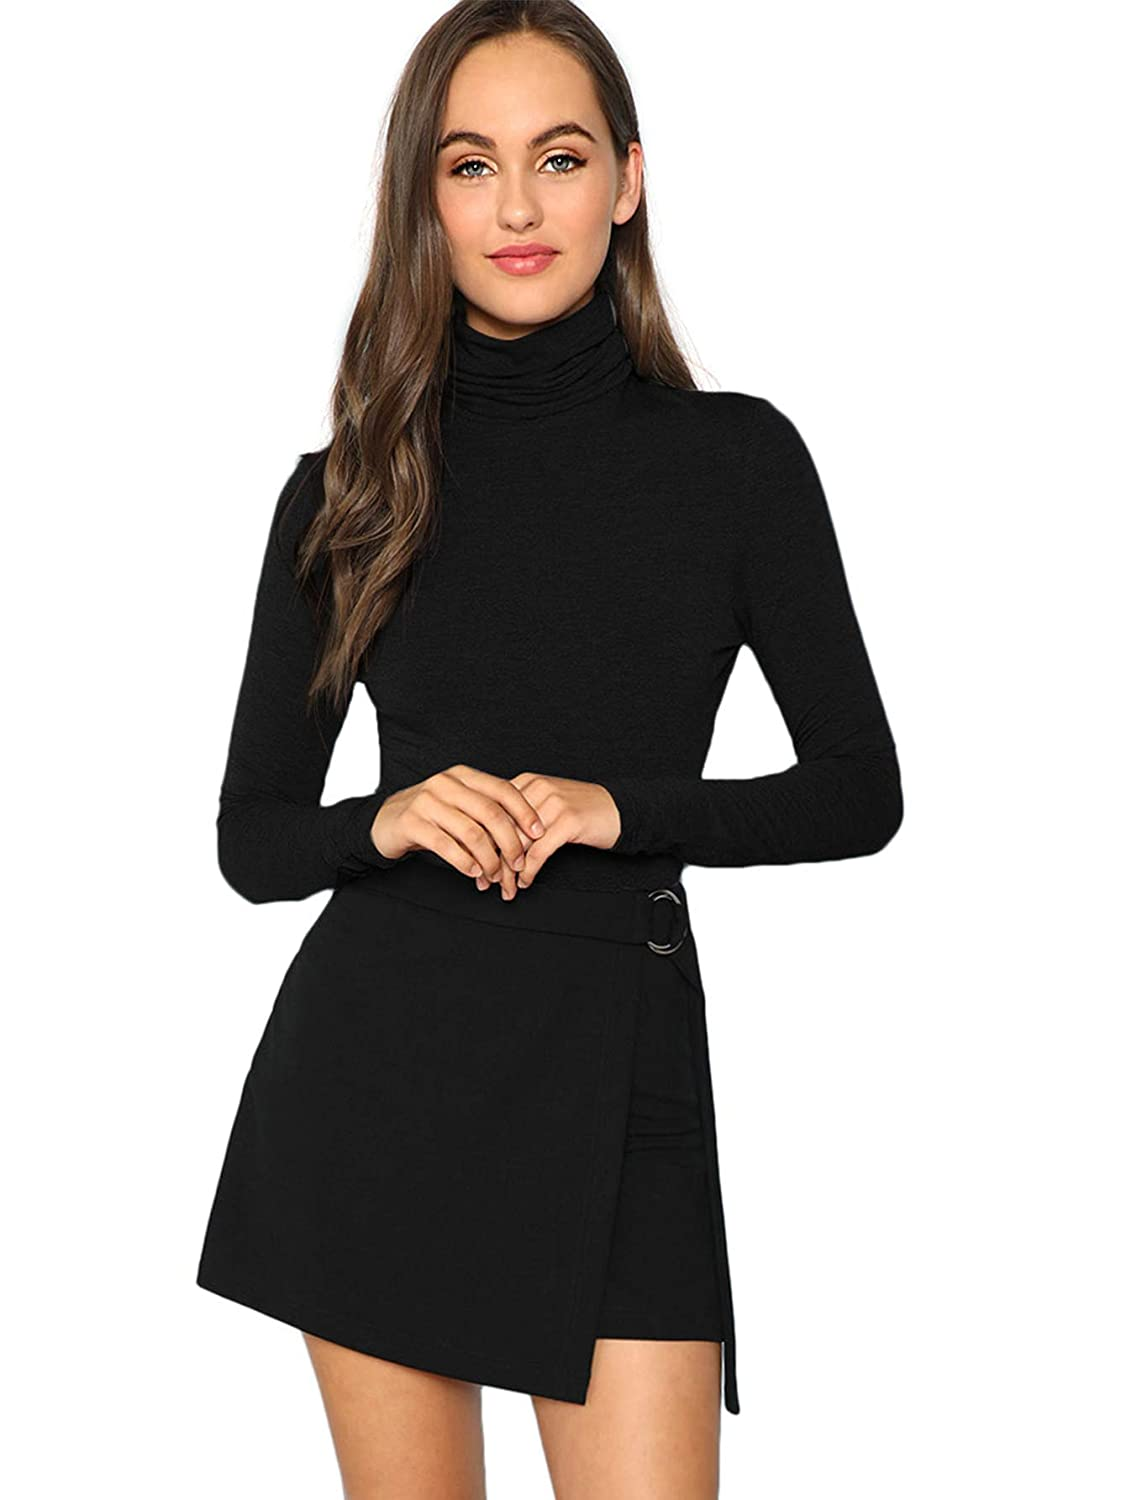 Black Verdusa Women's High Neck Long Sleeve Knit Bodysuit